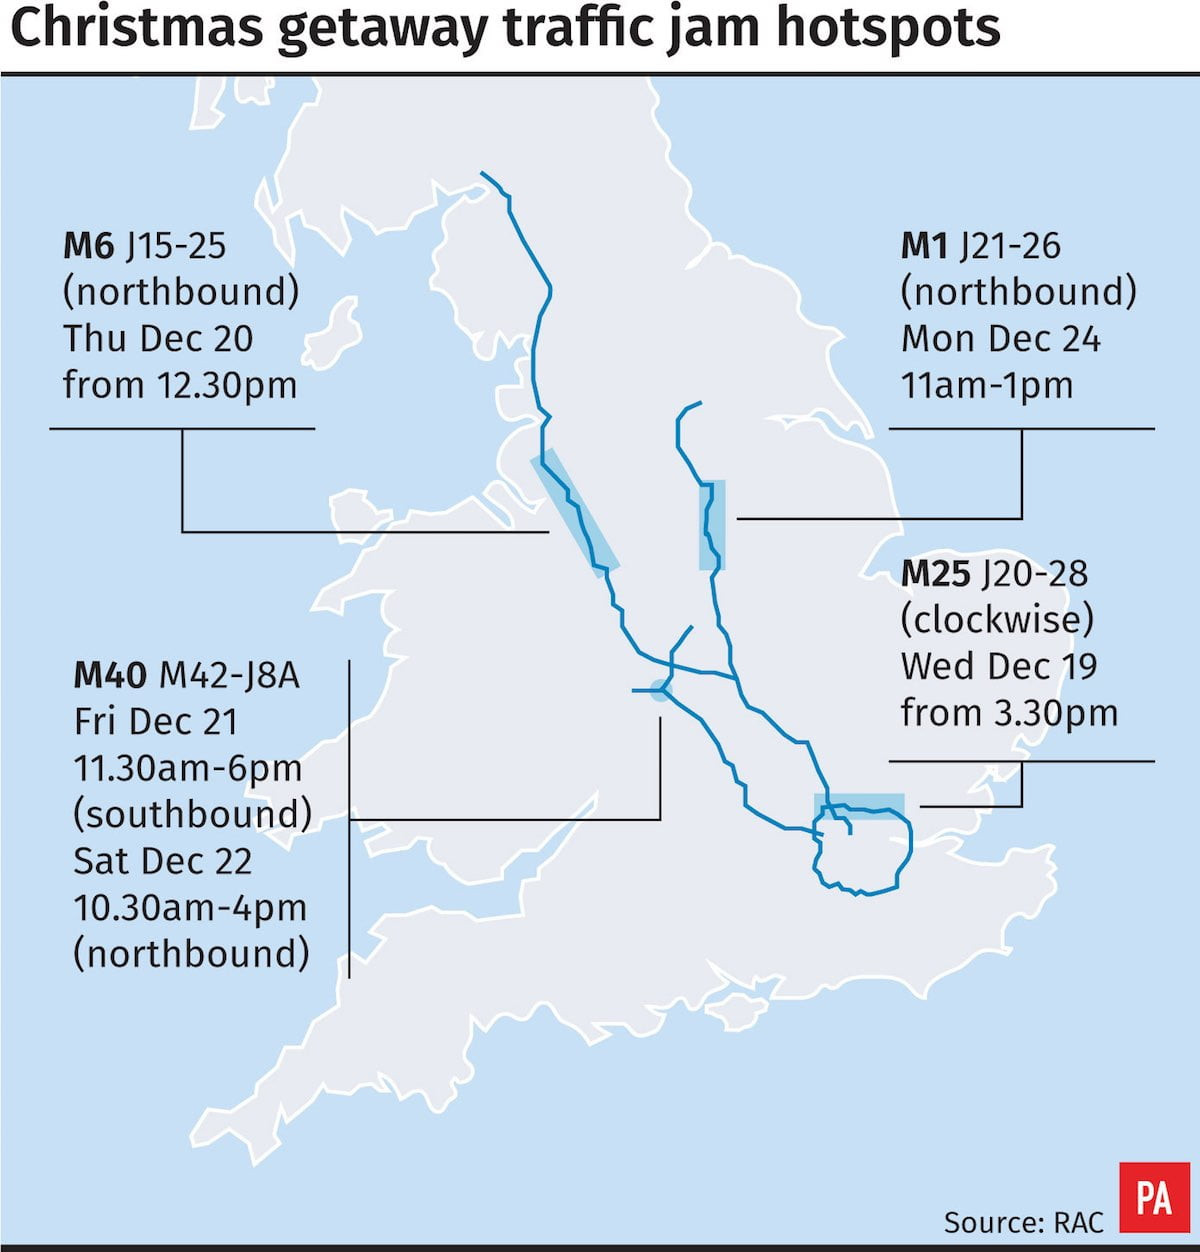 Expected Christmas traffic congestion across England